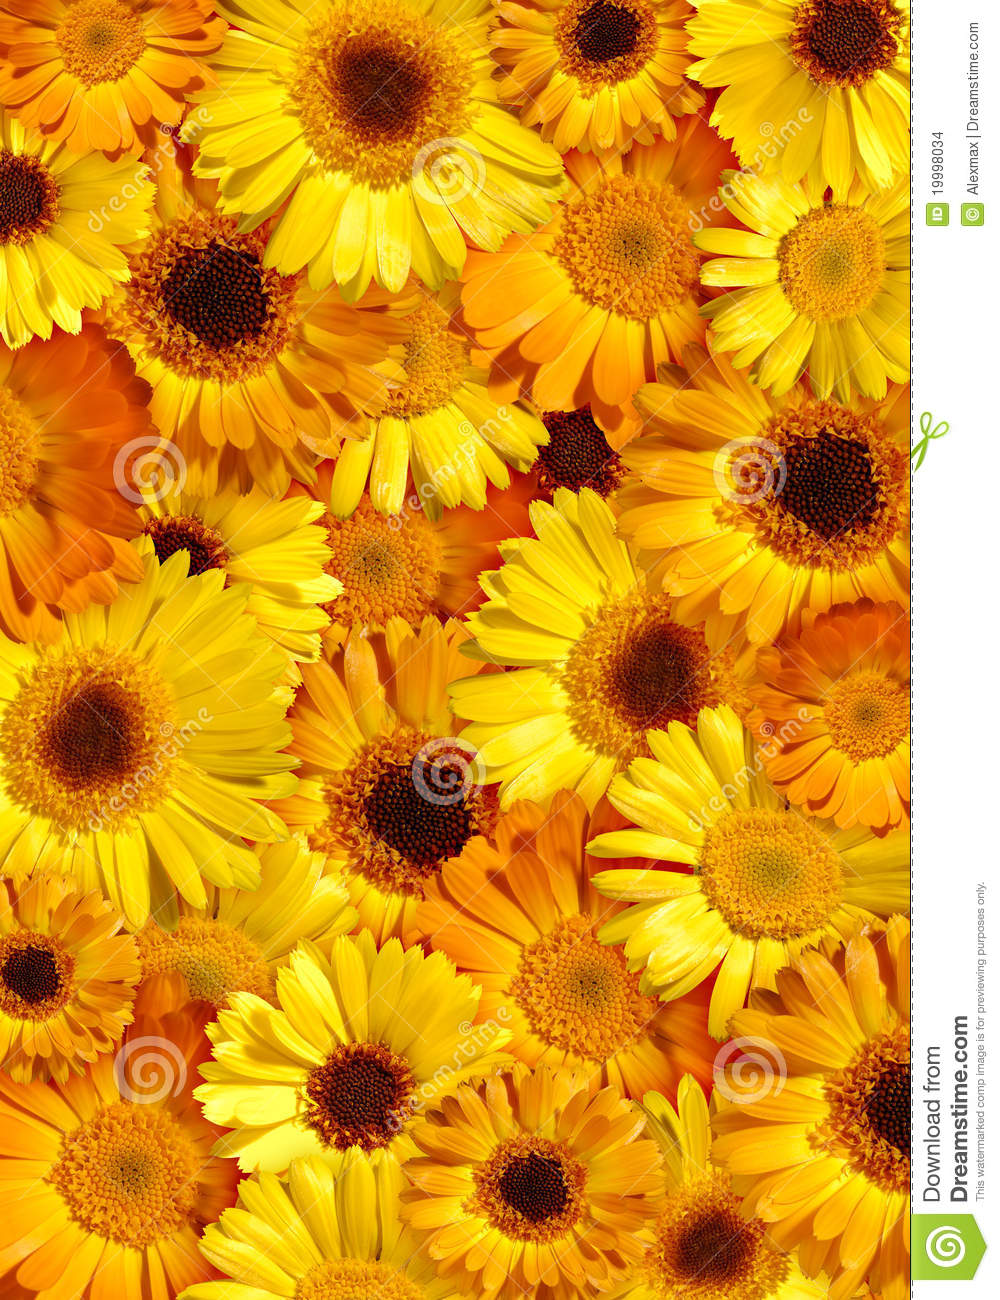 beautiful yellow floral background stock photo - image of pattern